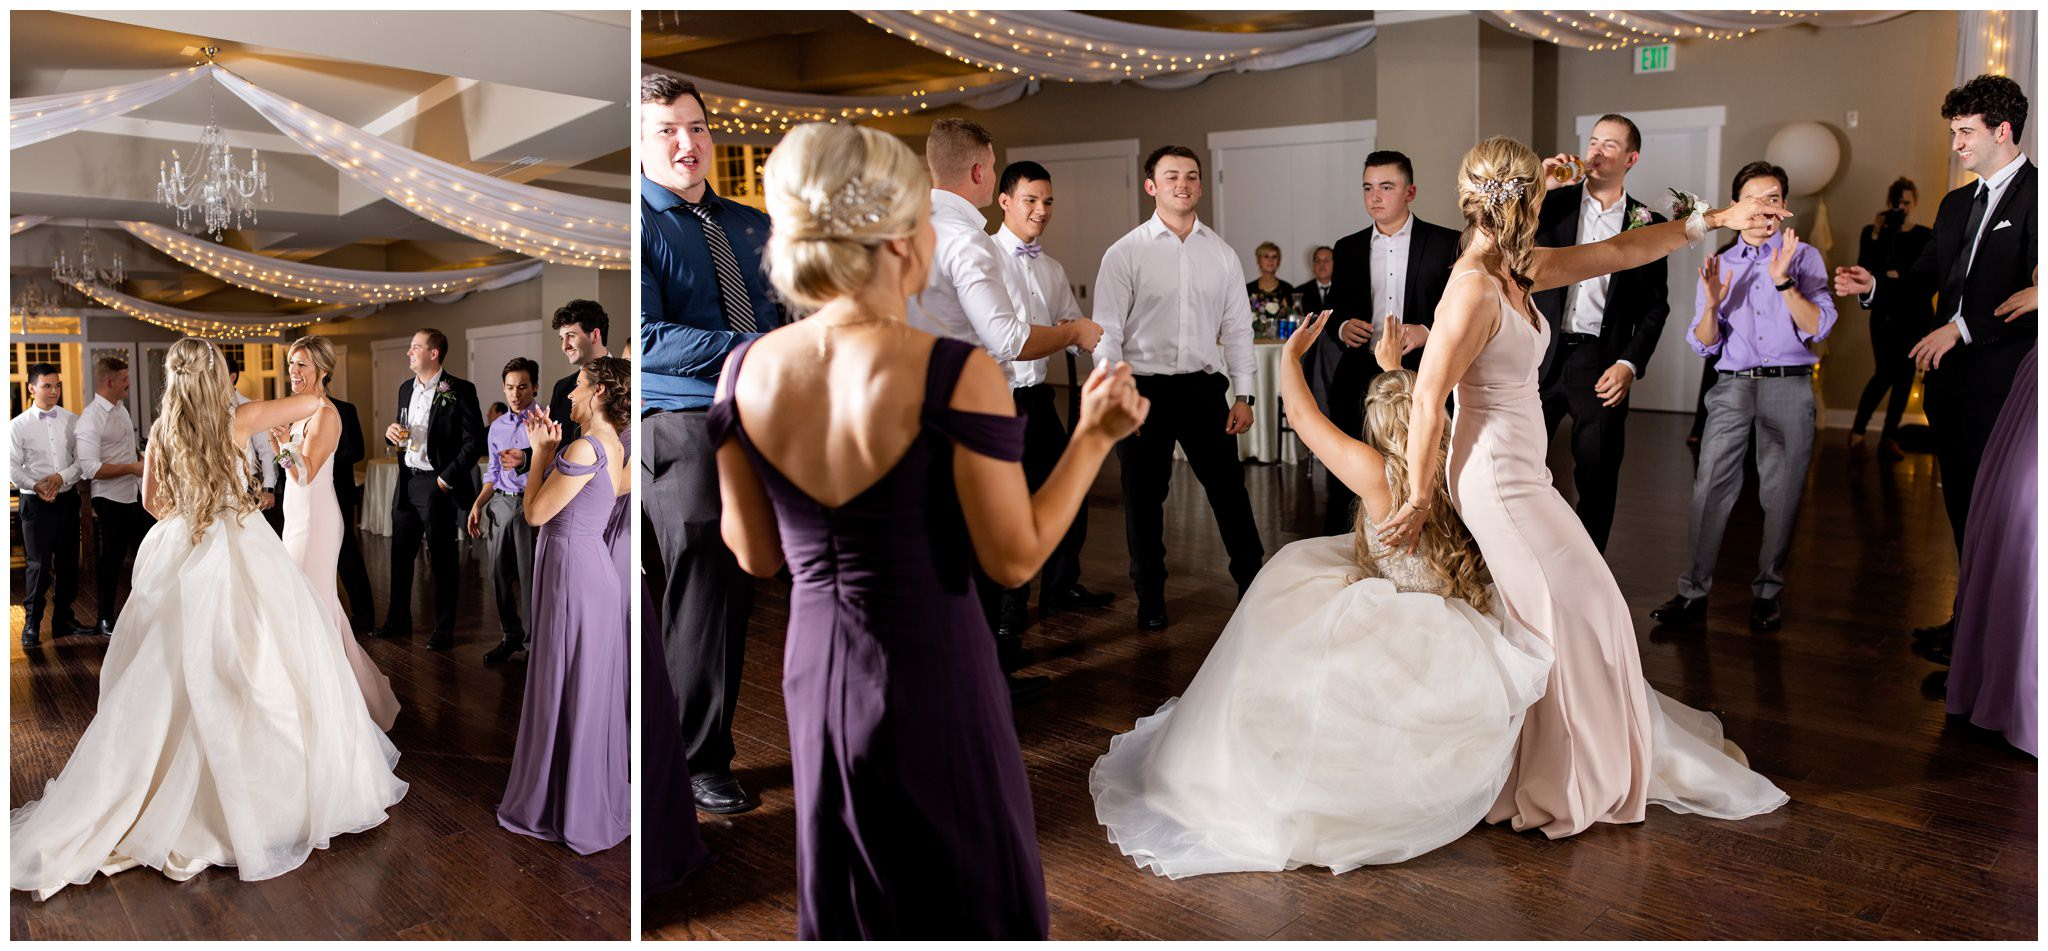 Bride and her mom dancing at wedding